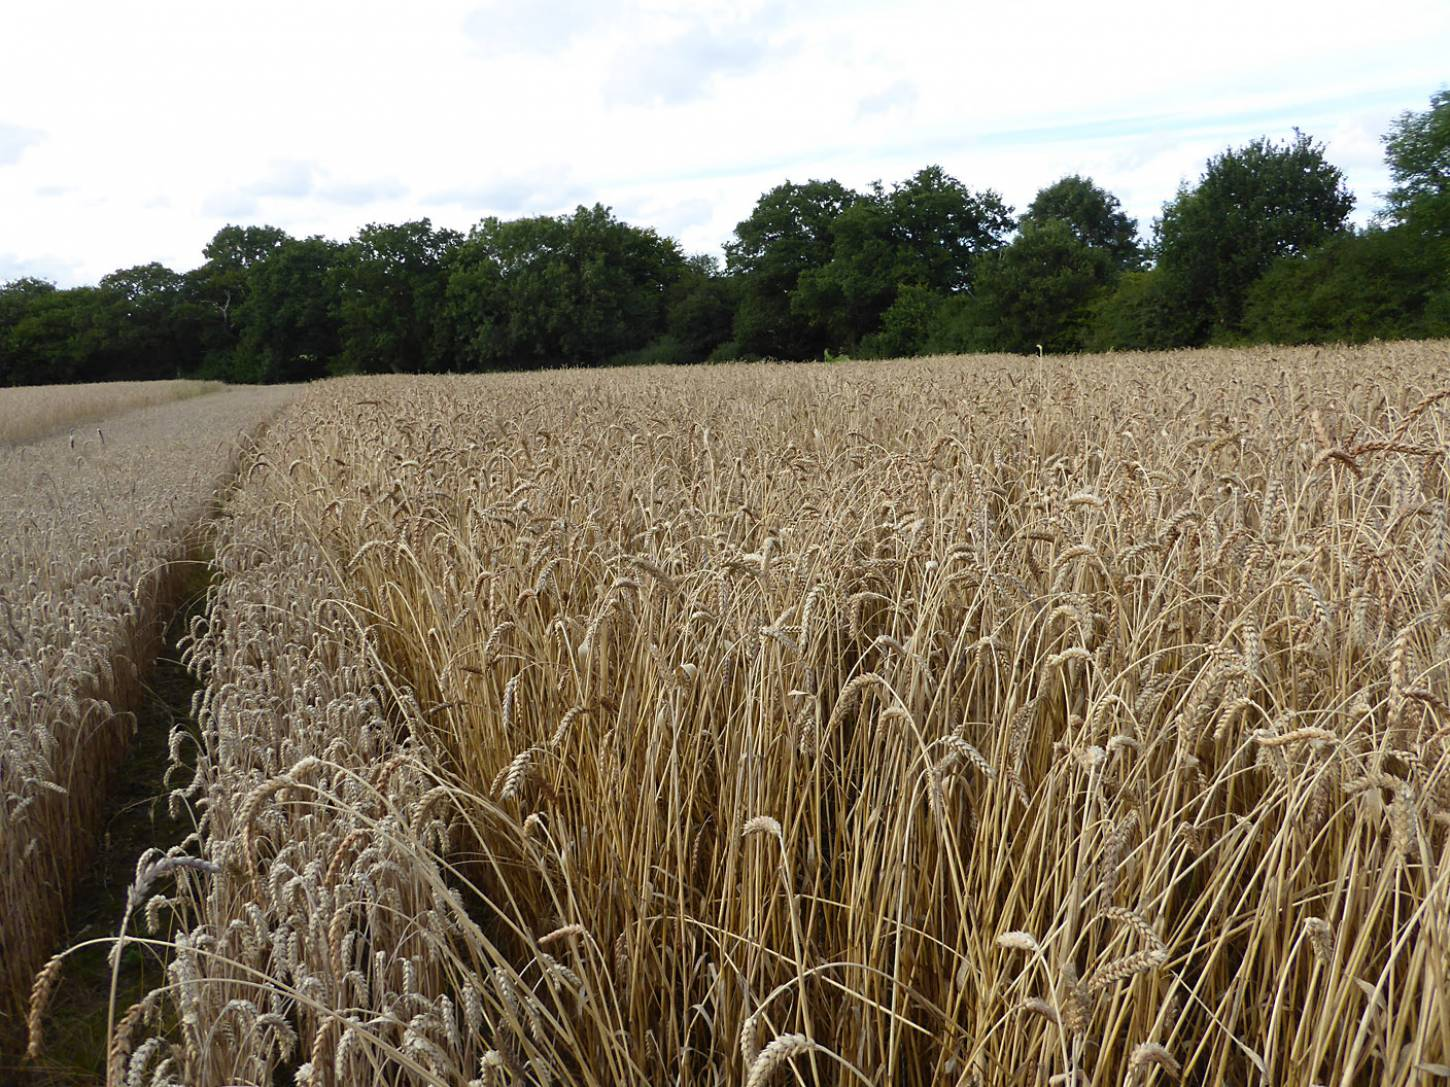 Ble de Flandre right, strip of modern Nelson wheat to left, farm review pre-harvest '17 - 6:21pm&nbsp;1<sup>st</sup>&nbsp;Aug.&nbsp;'17  <a href='http://maps.google.com/?t=h&q=51.208383,-0.084958&z=18&output=embed' target=_blank><img src='http://www.brockwell-bake.org.uk/img/marker.png' style='border:none;vertical-align:top' height=16px></a>